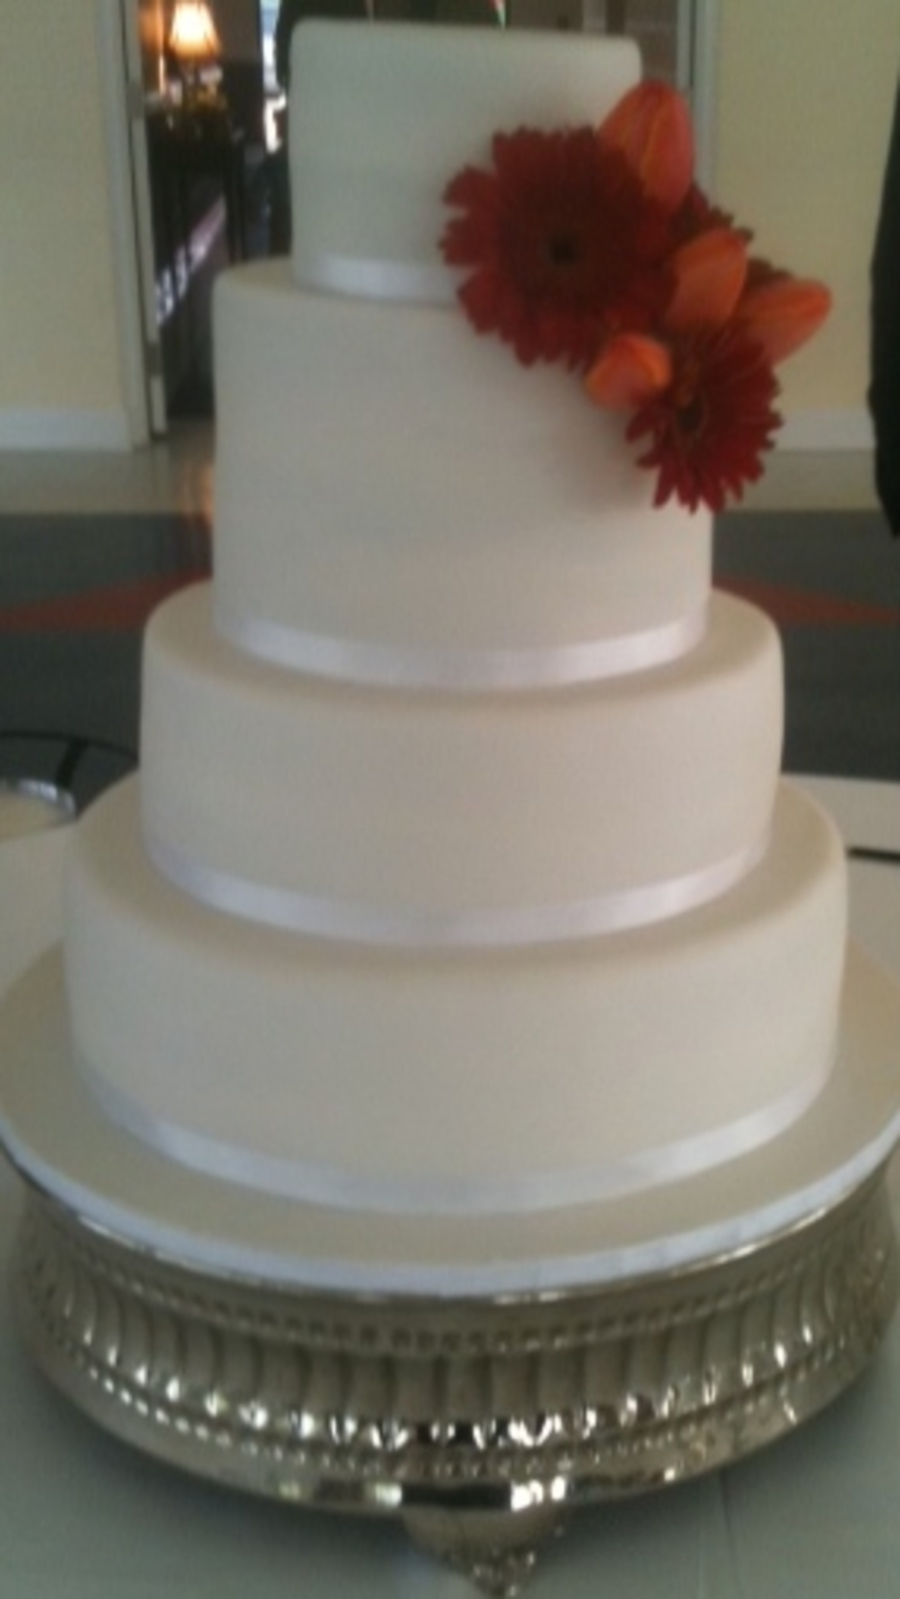 Simple Sleek & Elegant on Cake Central